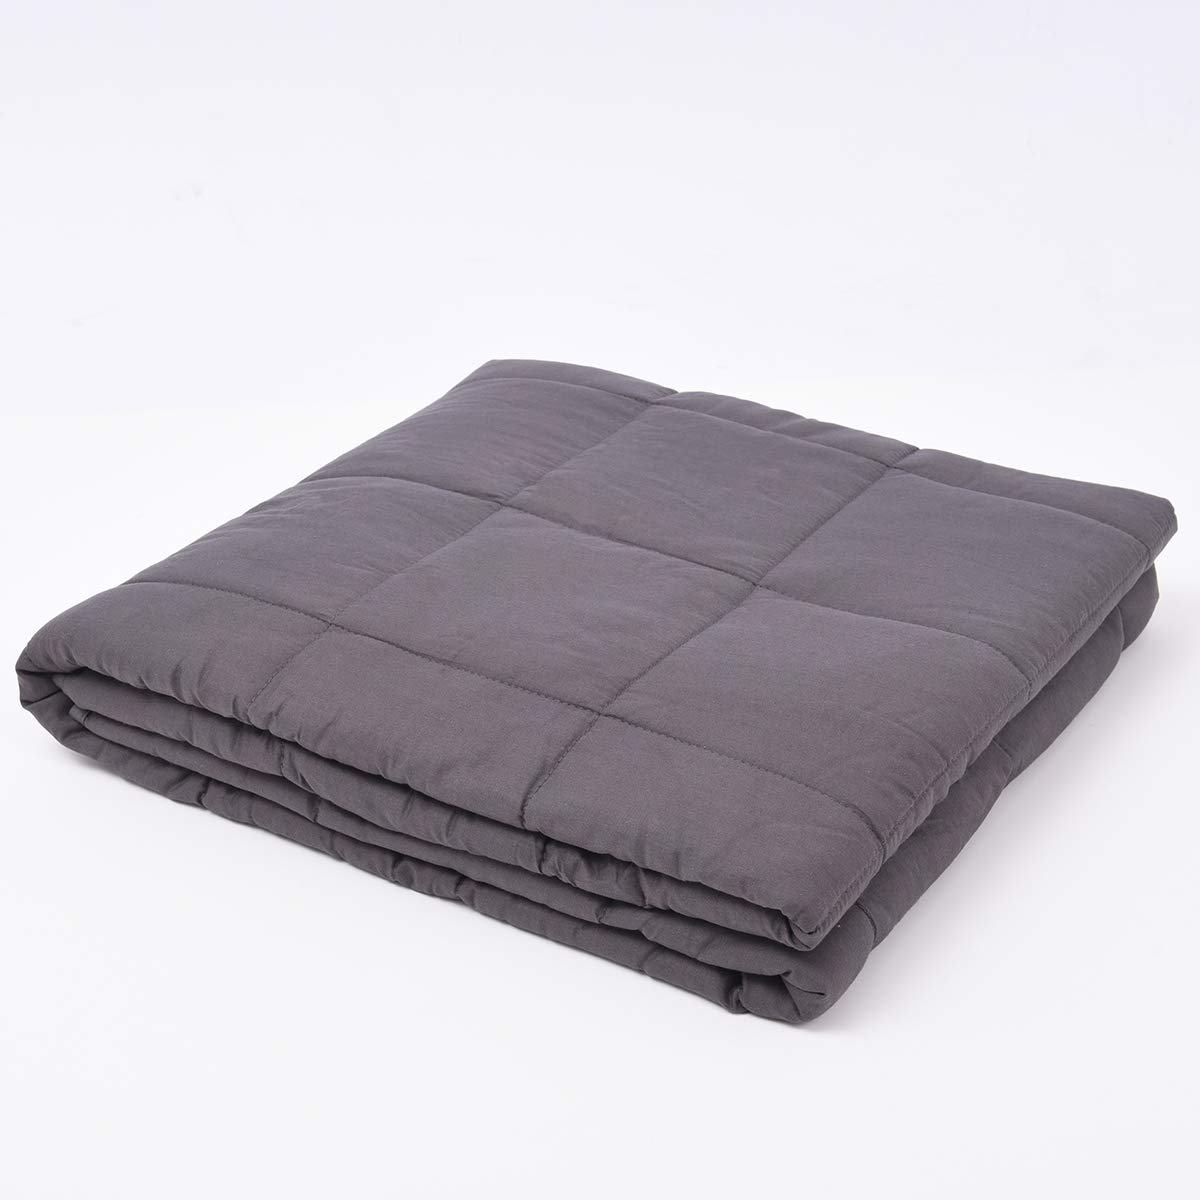 Viking Supply Weighted Blanket Twin Size (48''x72'') Cotton Weighted Blanket Cotton Quilt Comforter 100% Cotton Material with Glass Beads